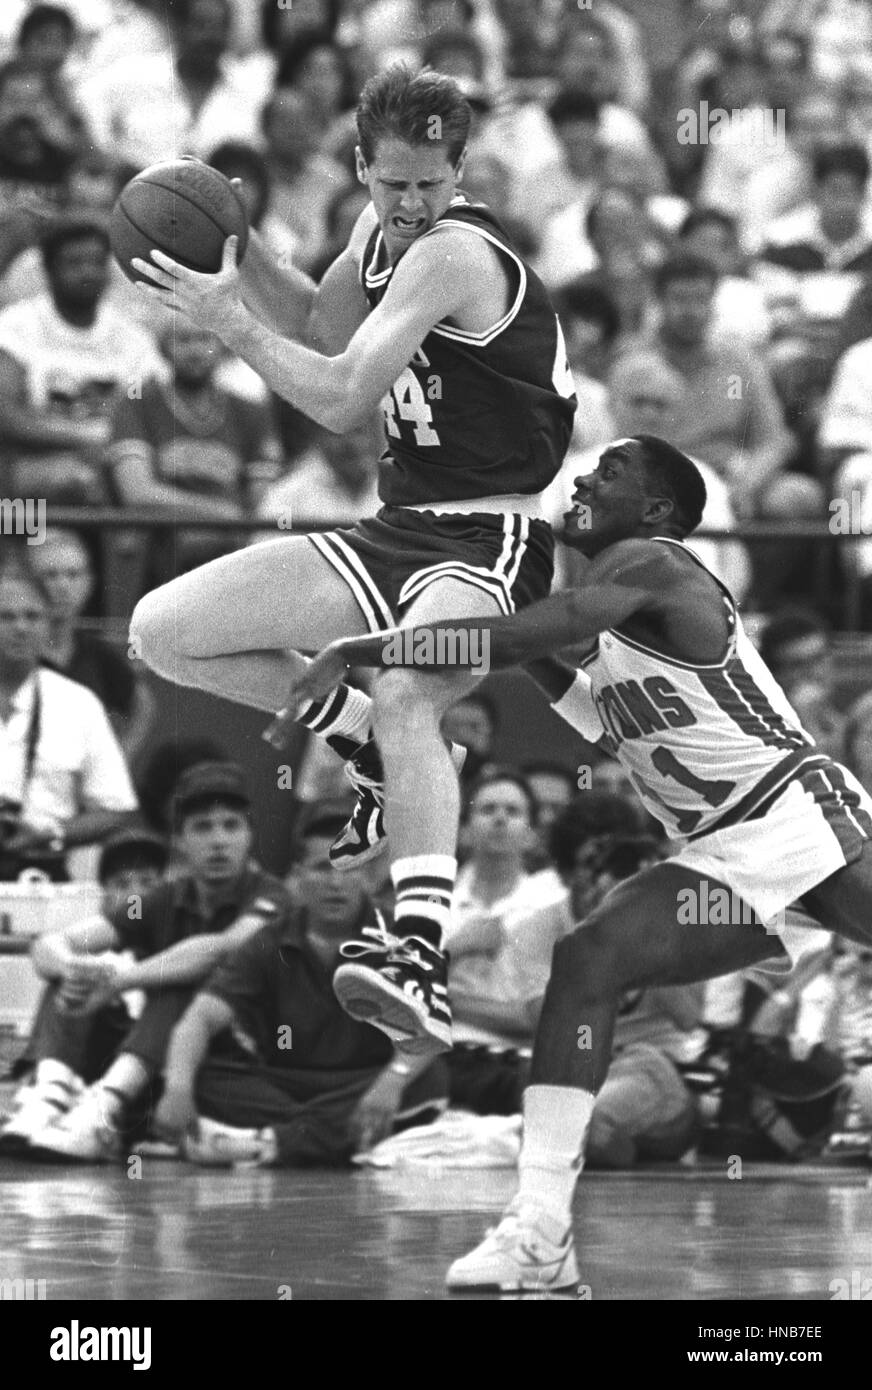 Celtics Danny Ainge (left) and Pistons Isaiah Thomas (right) in action during the NBA playoffs in Detroit Michigan Stock Photo